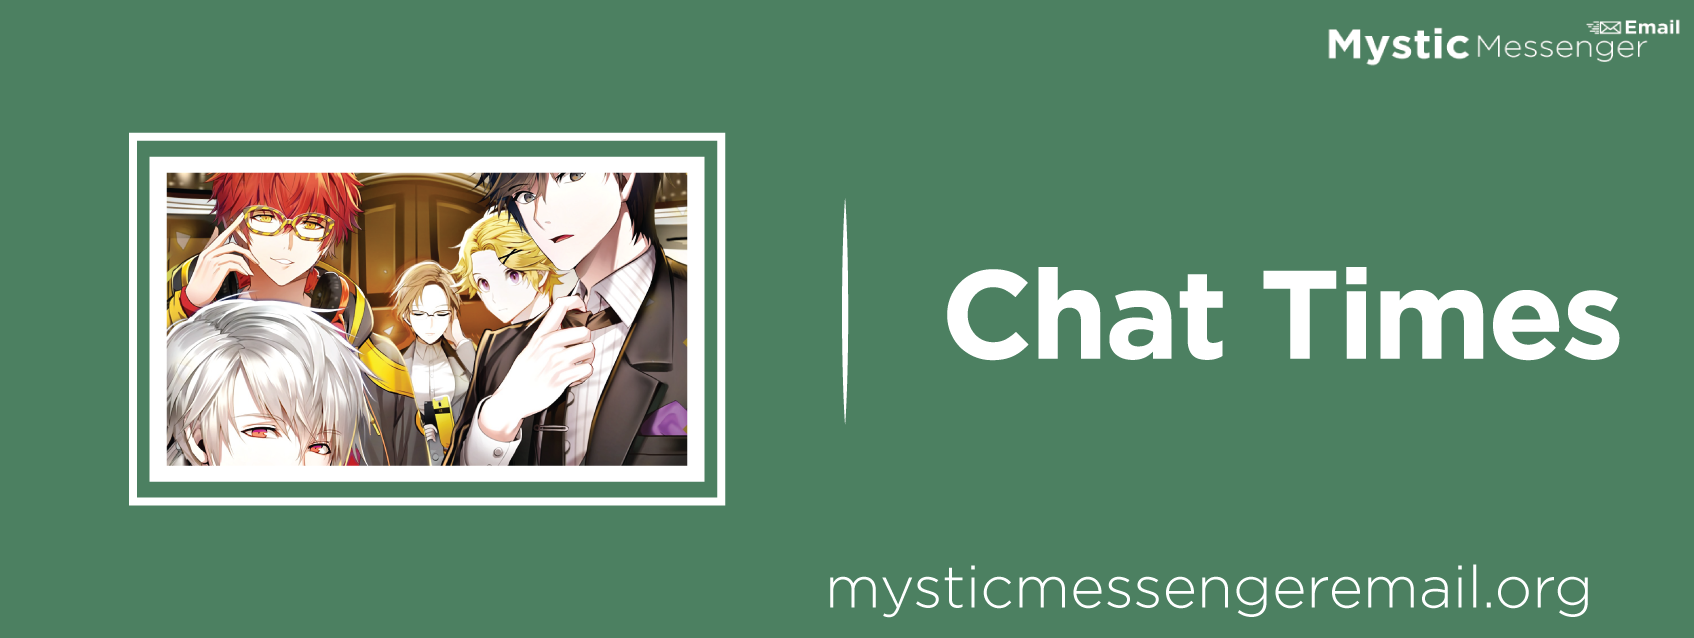 mystic-messenger-chat-times-schedule-guide